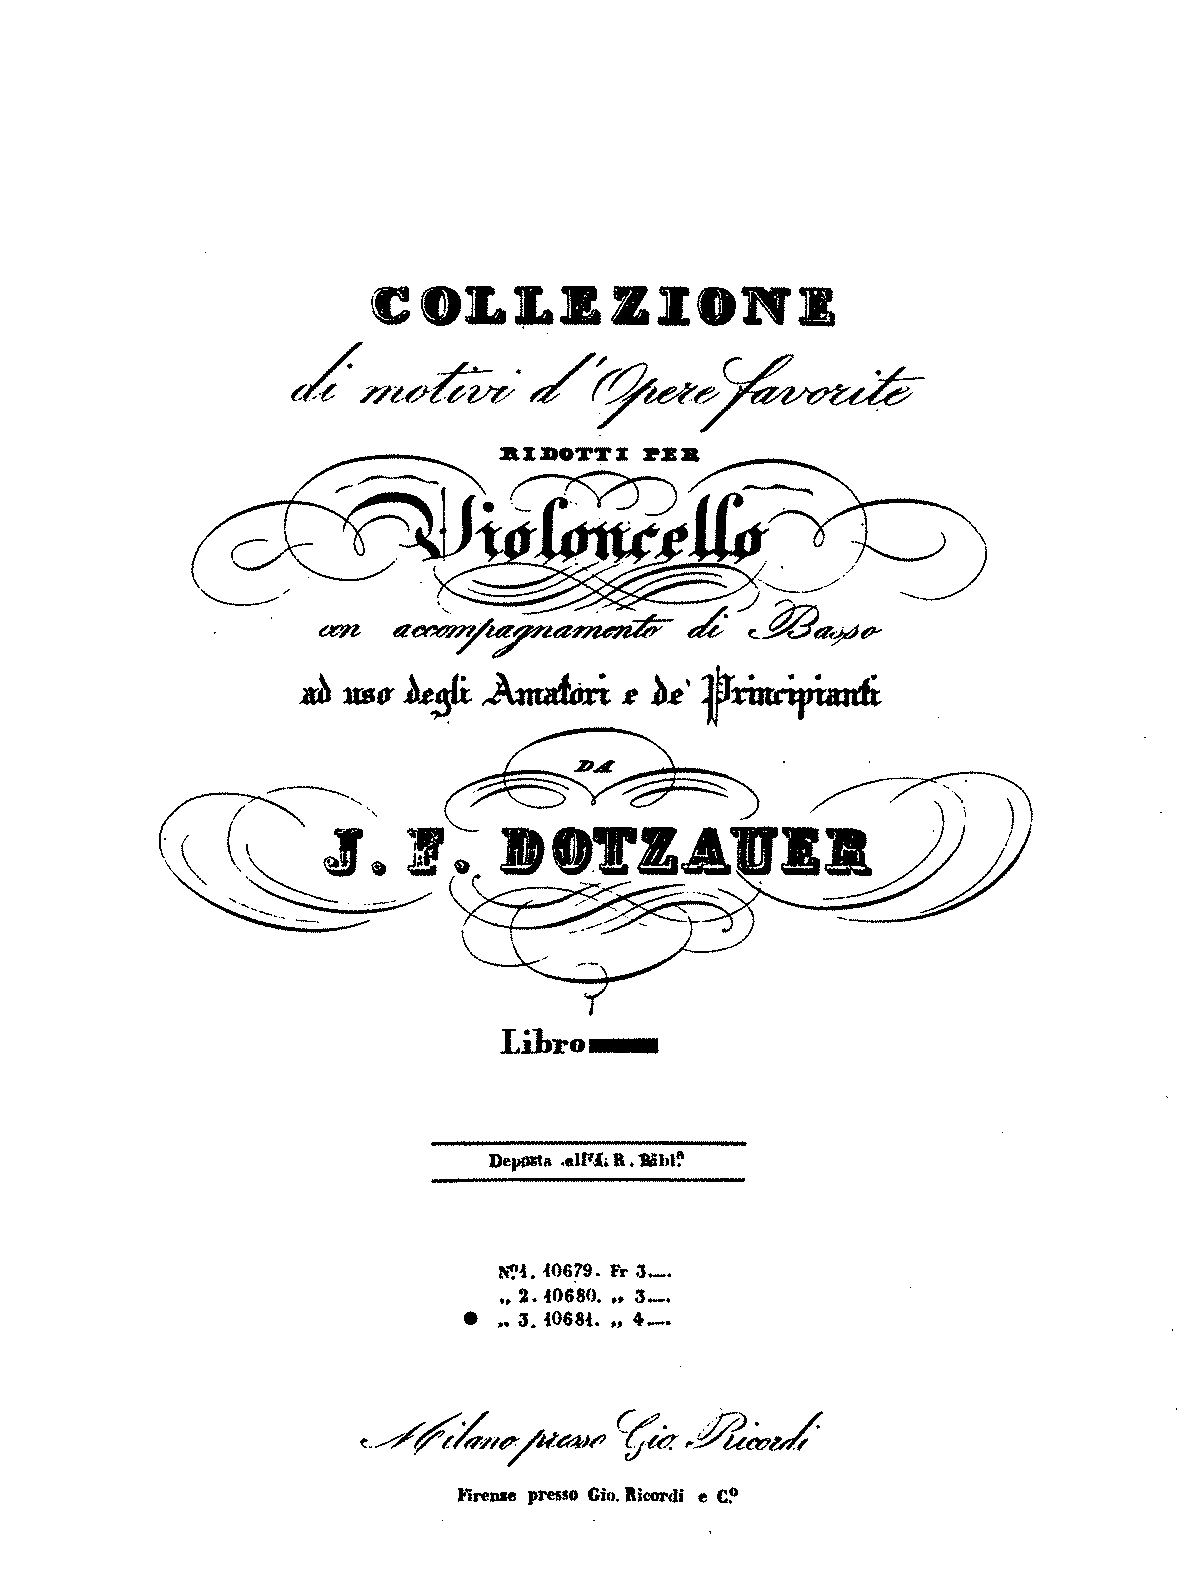 PMLP338402-Dotzauer - Collection of Favorite Opera motifs for 2 cellos Book3 Vc1.pdf